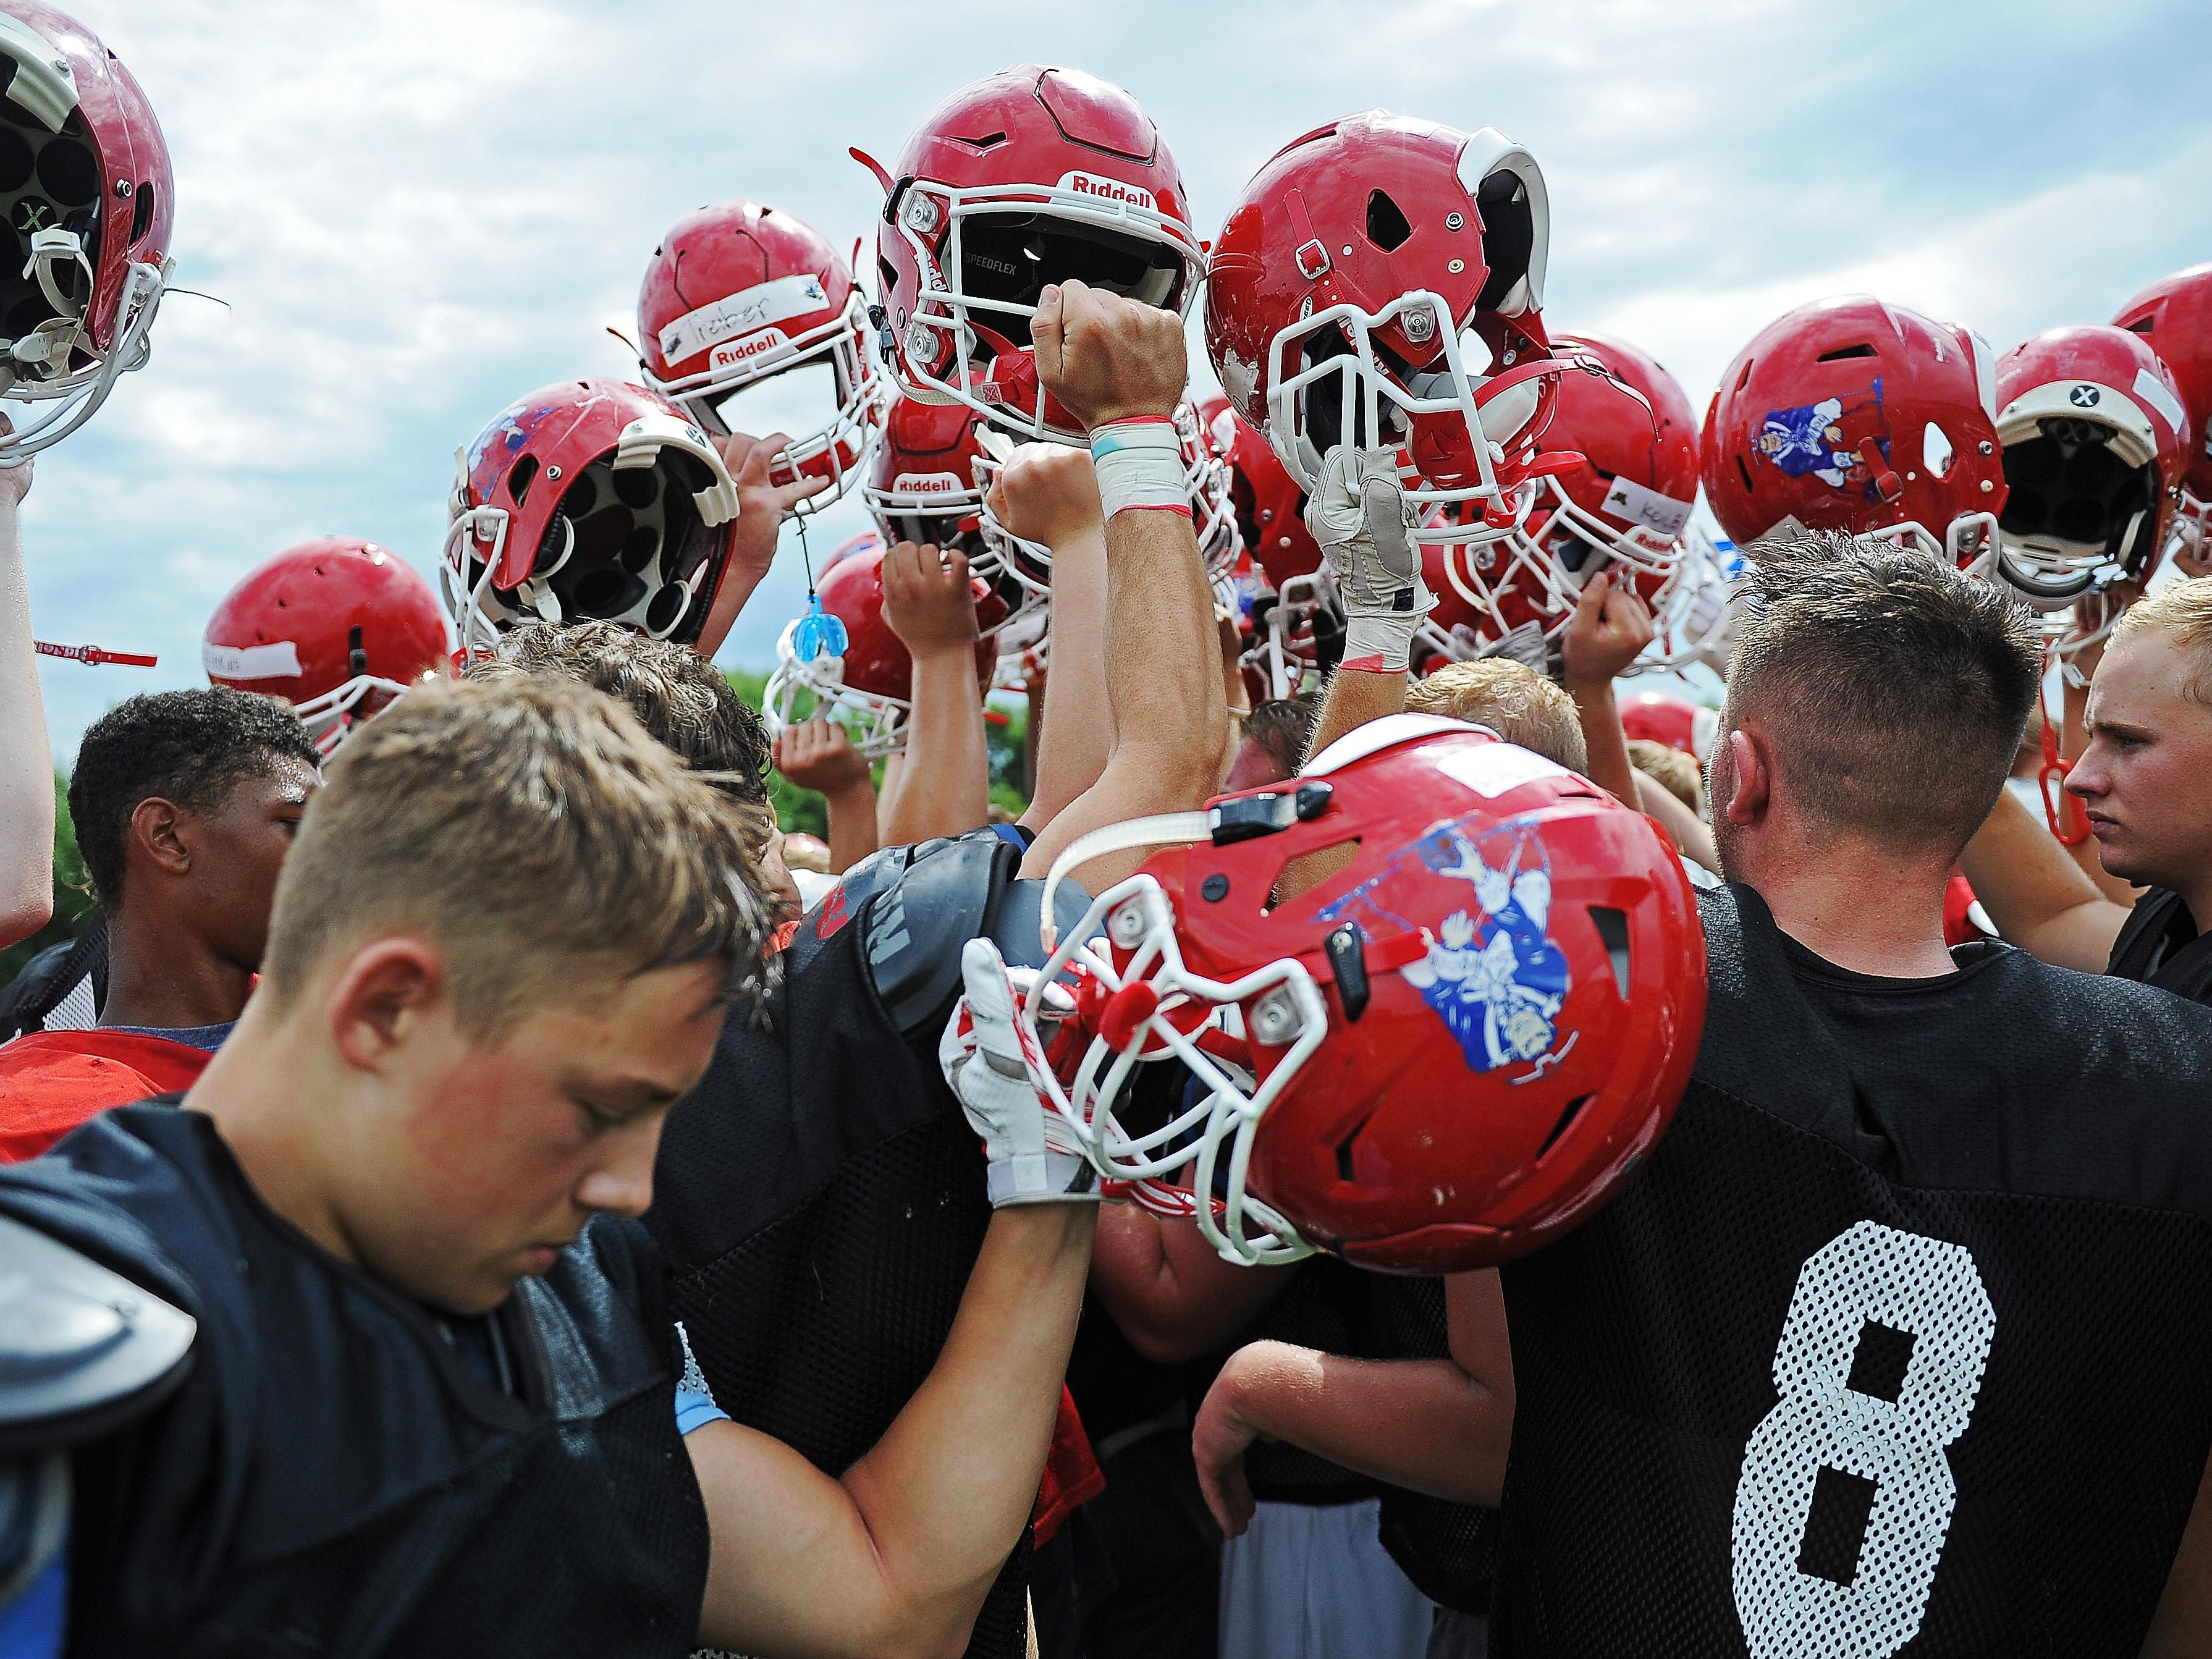 Lincoln High School football players huddle together at the end of a Lincoln High School football practice Thursday, Aug. 11, 2016, at Lincoln High School in Sioux Falls.